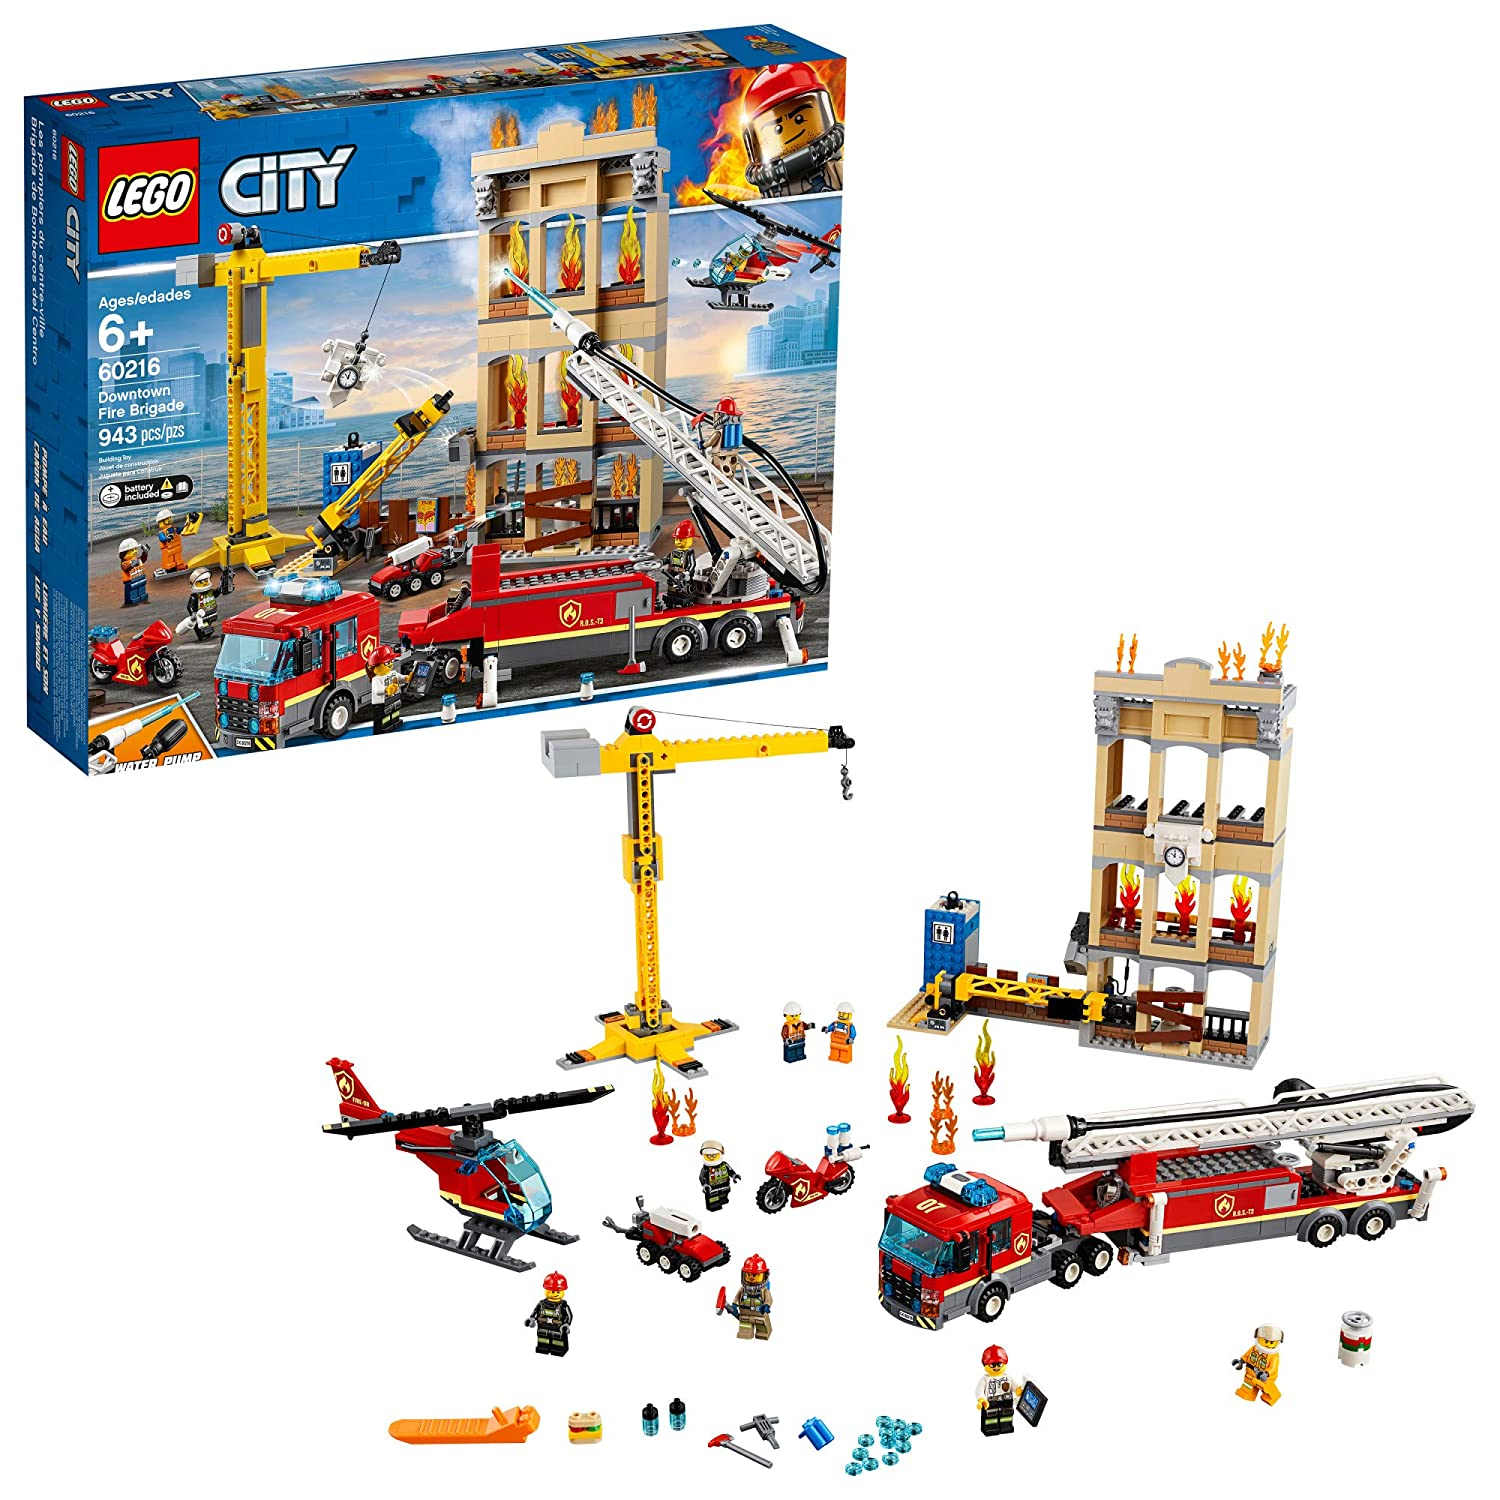 Amazon.com: LEGO City Downtown Fire Brigade 60216 Building Kit , New 2019 (943 Piece): Toys & Games